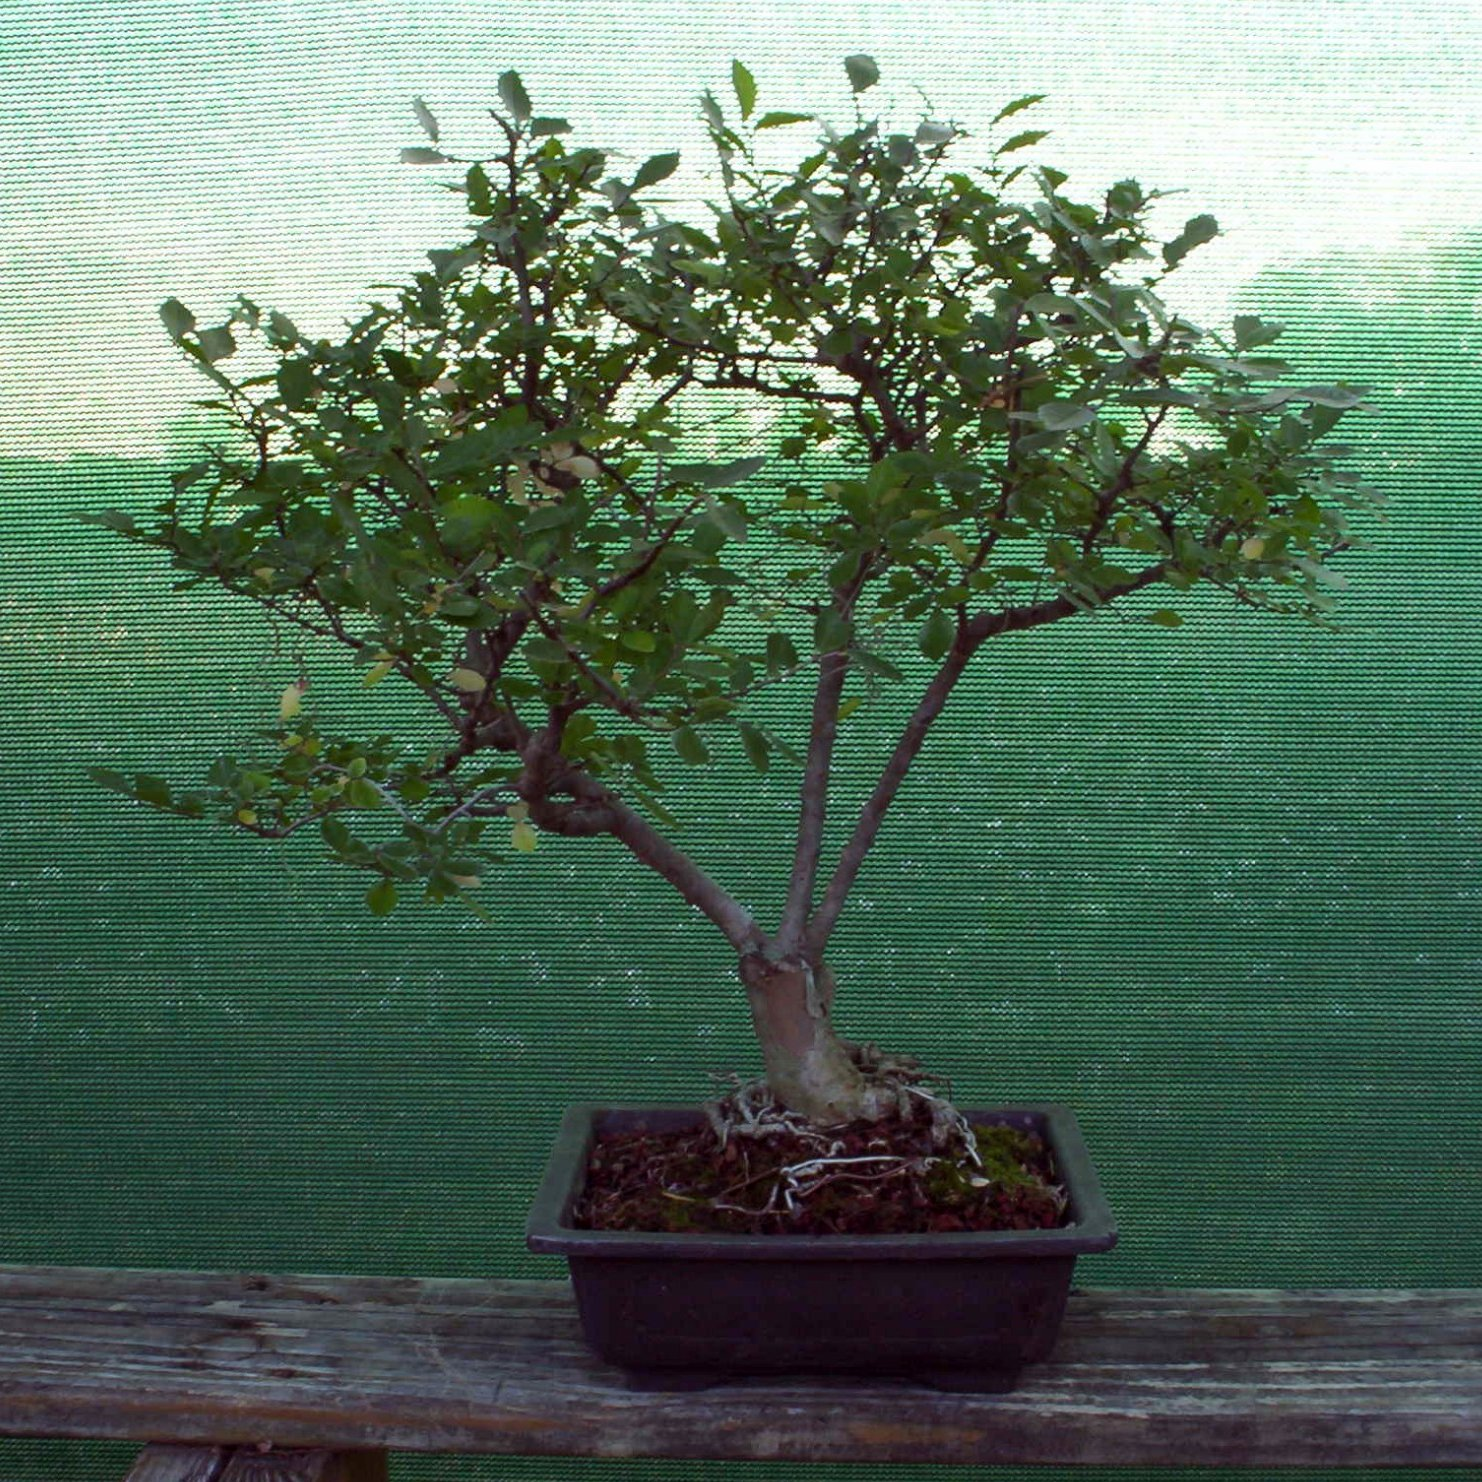 Bonsai Beginnings July 2012